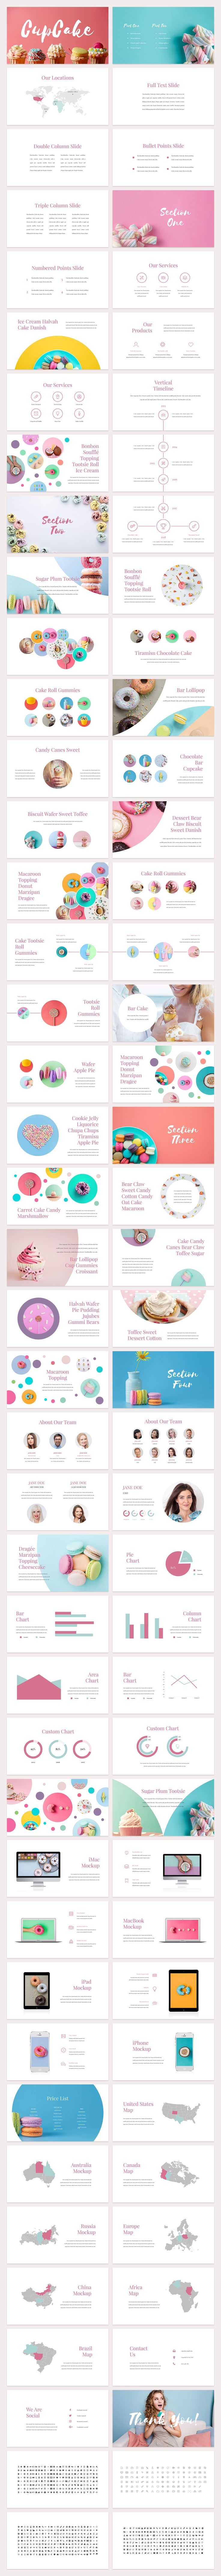 CupCake PowerPoint Template by SlideStation on @creativemarket More